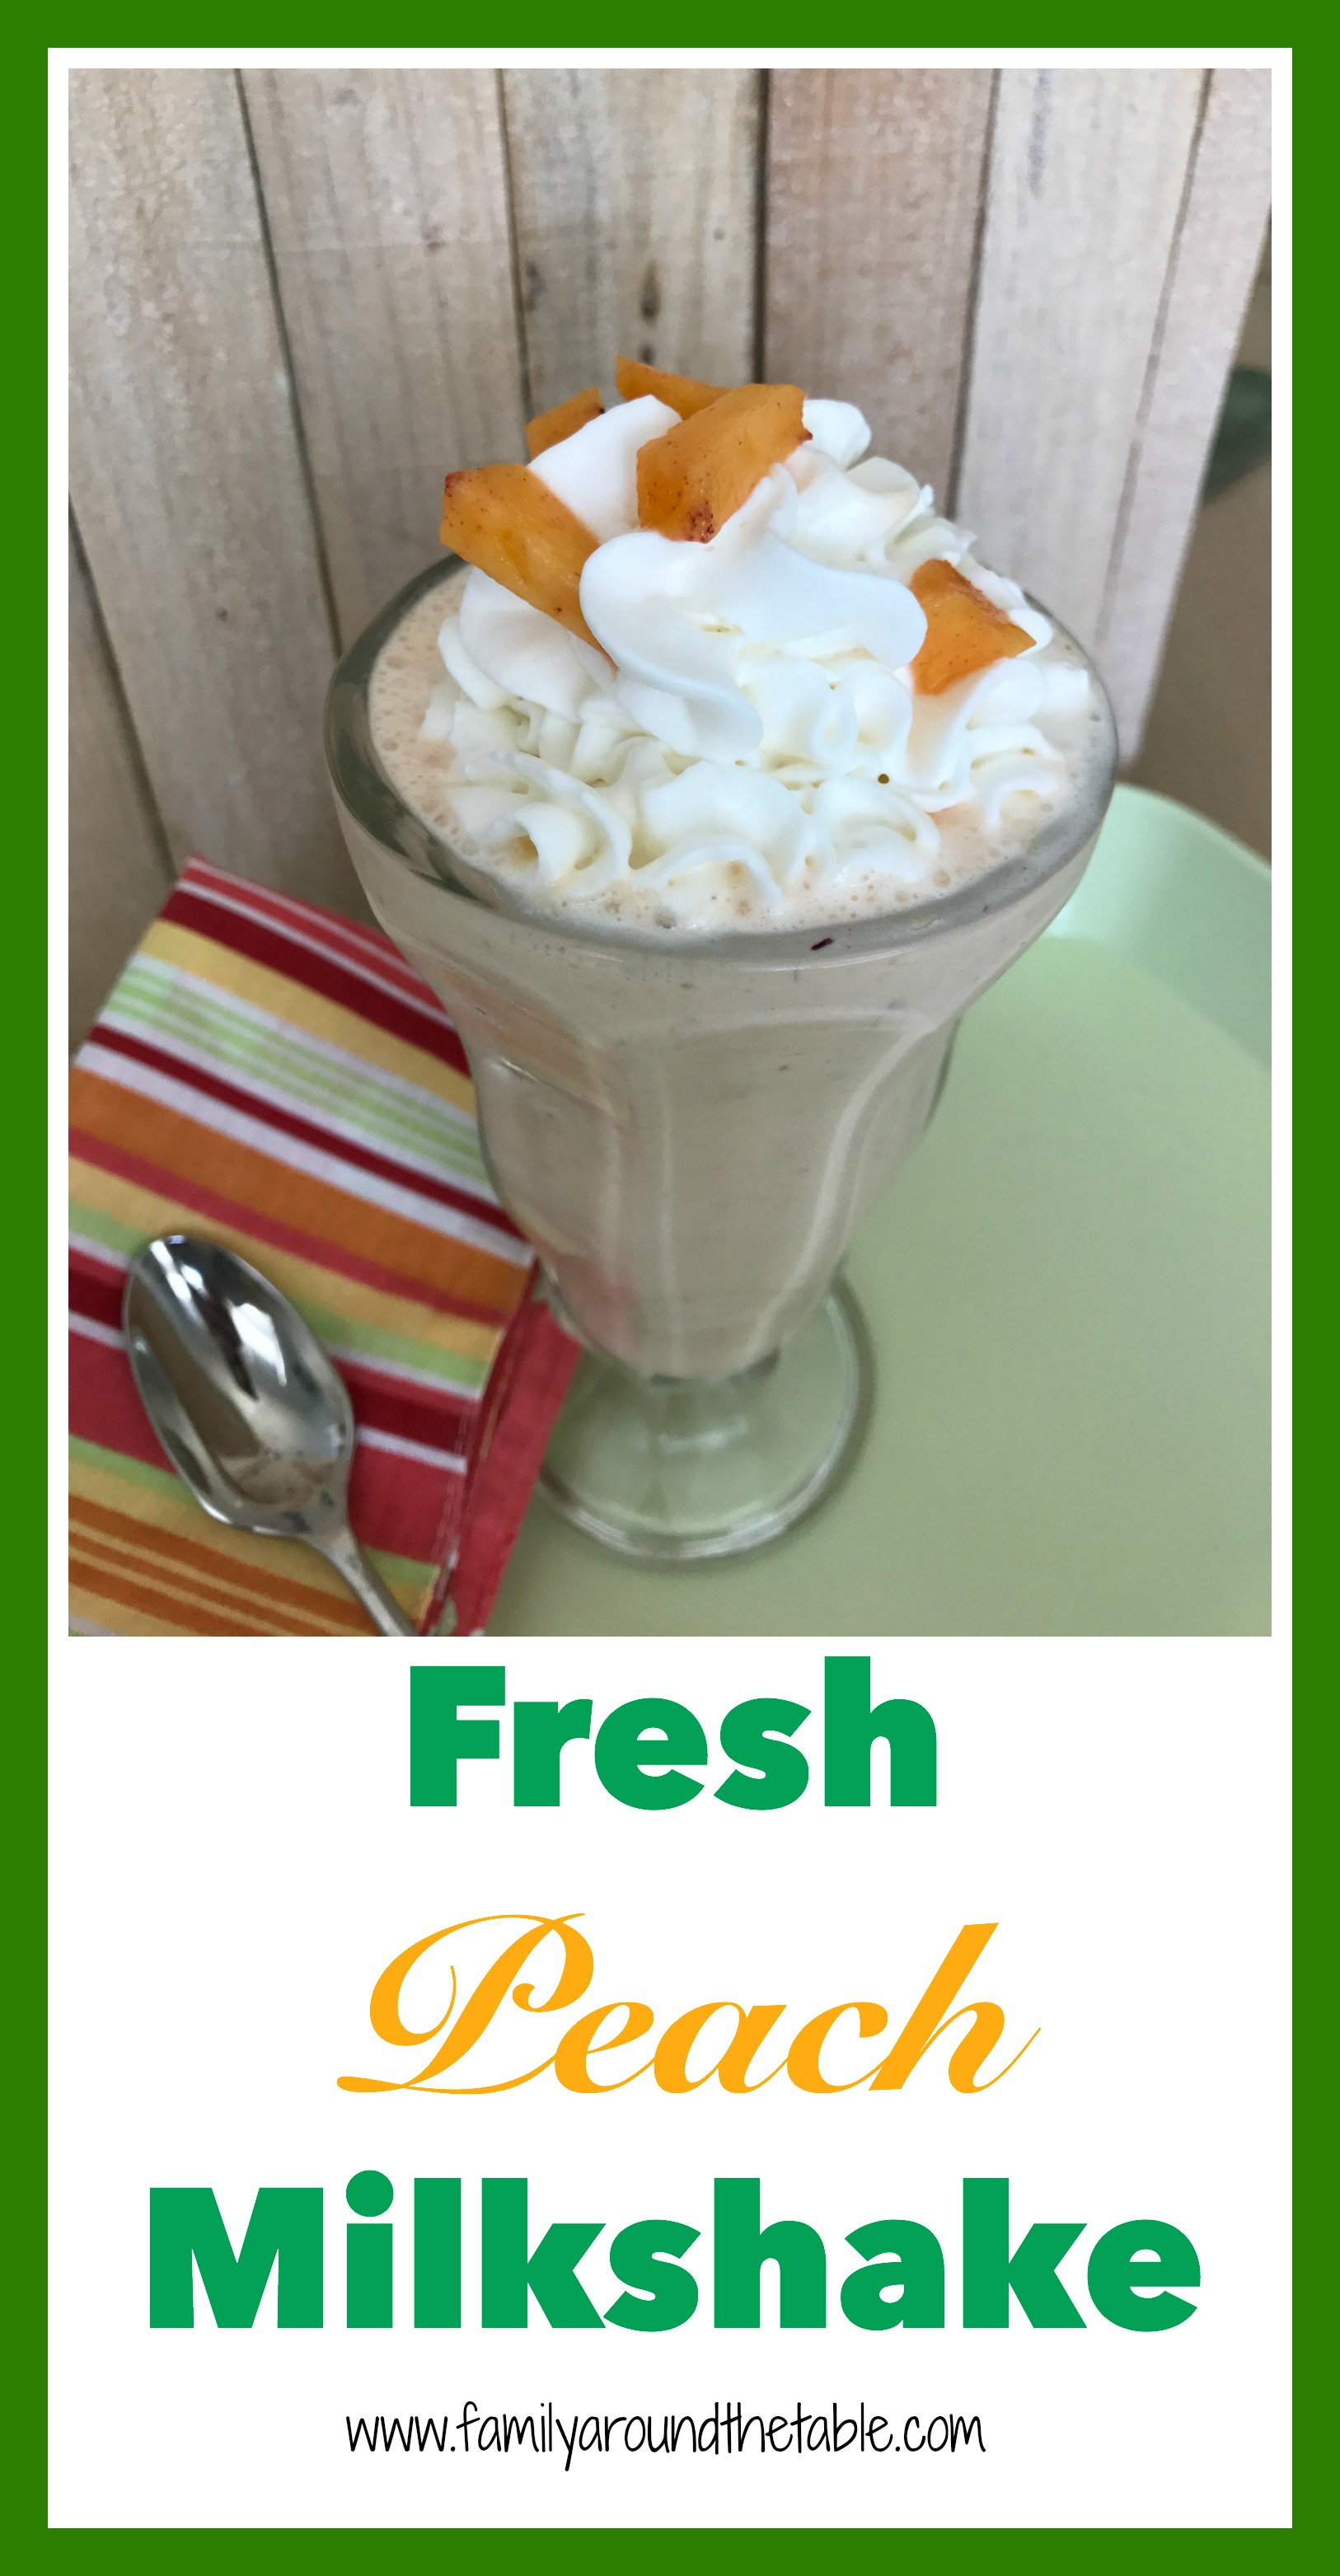 A fresh peach milkshake is a yummy after dinner treat.